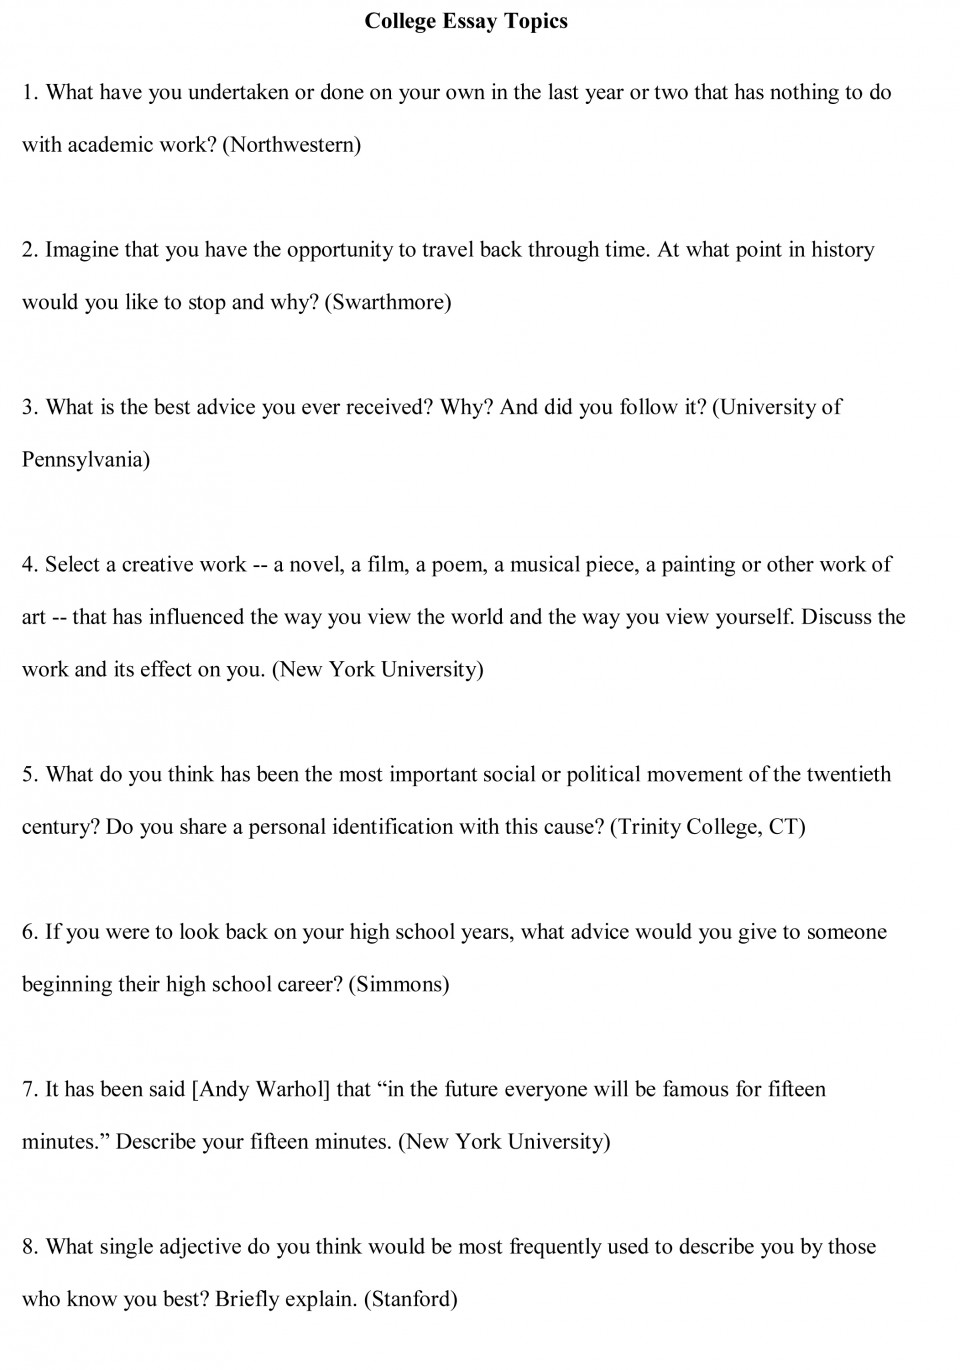 014 Essay Topics College Free Sample1 Archaicawful For High School English Schoolers Grade 8 960